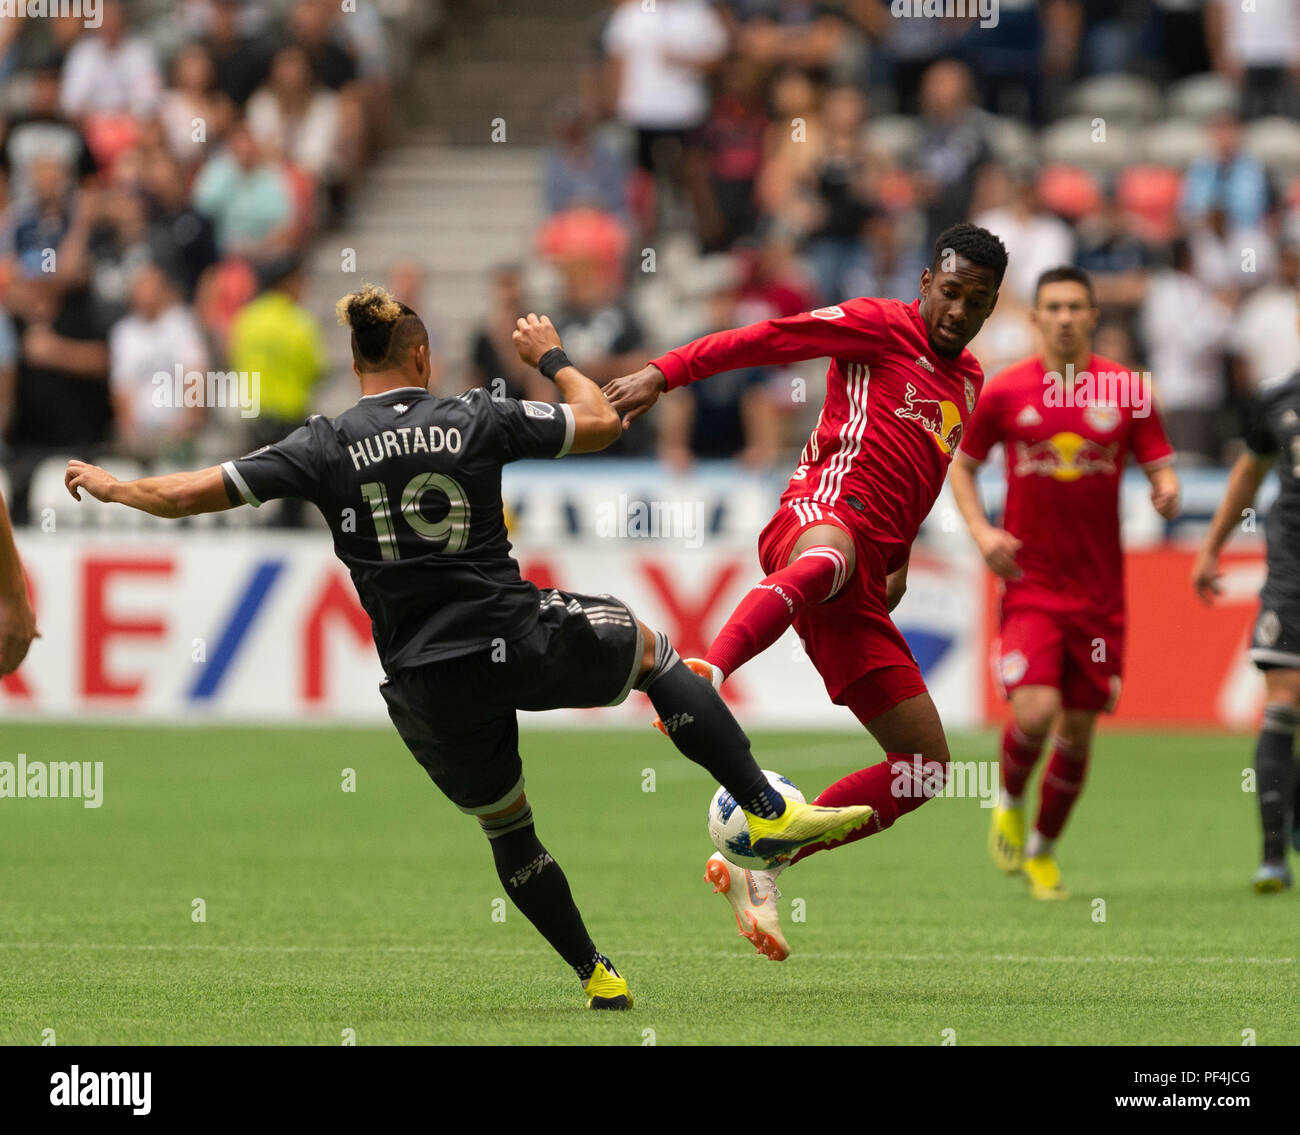 Vancouver, Canada. 18 August, 2018.  Michael Murillo (62) of New York Red Bulls, and Erik Hurtado (19) of Vancouver Whitecaps, battle for the ball. Vancouver Whitecaps vs New York Red Bulls, BC Place Stadium. © Gerry Rousseau/Alamy Live News - Stock Image